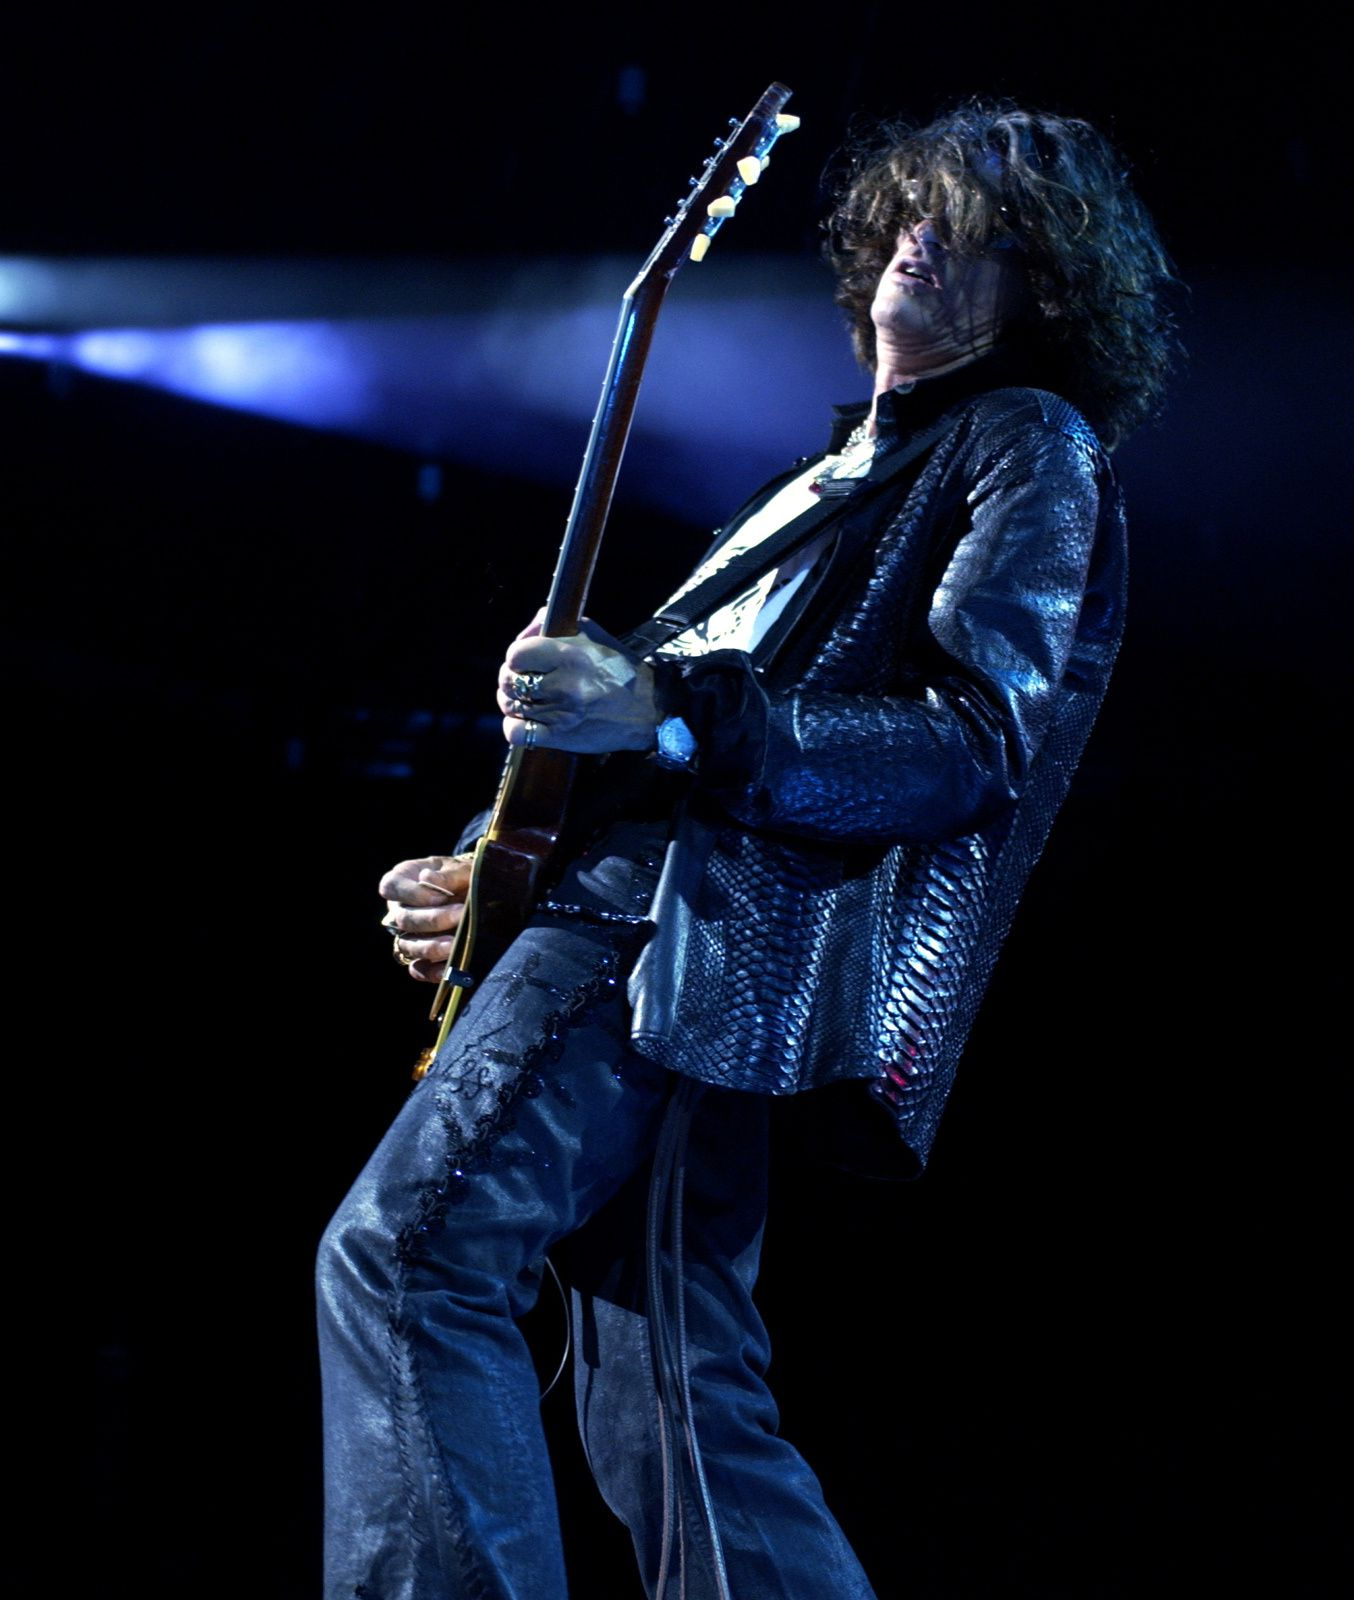 Joe Perry - 2009 - Croc Rock AEROSMITH KISS TOUR